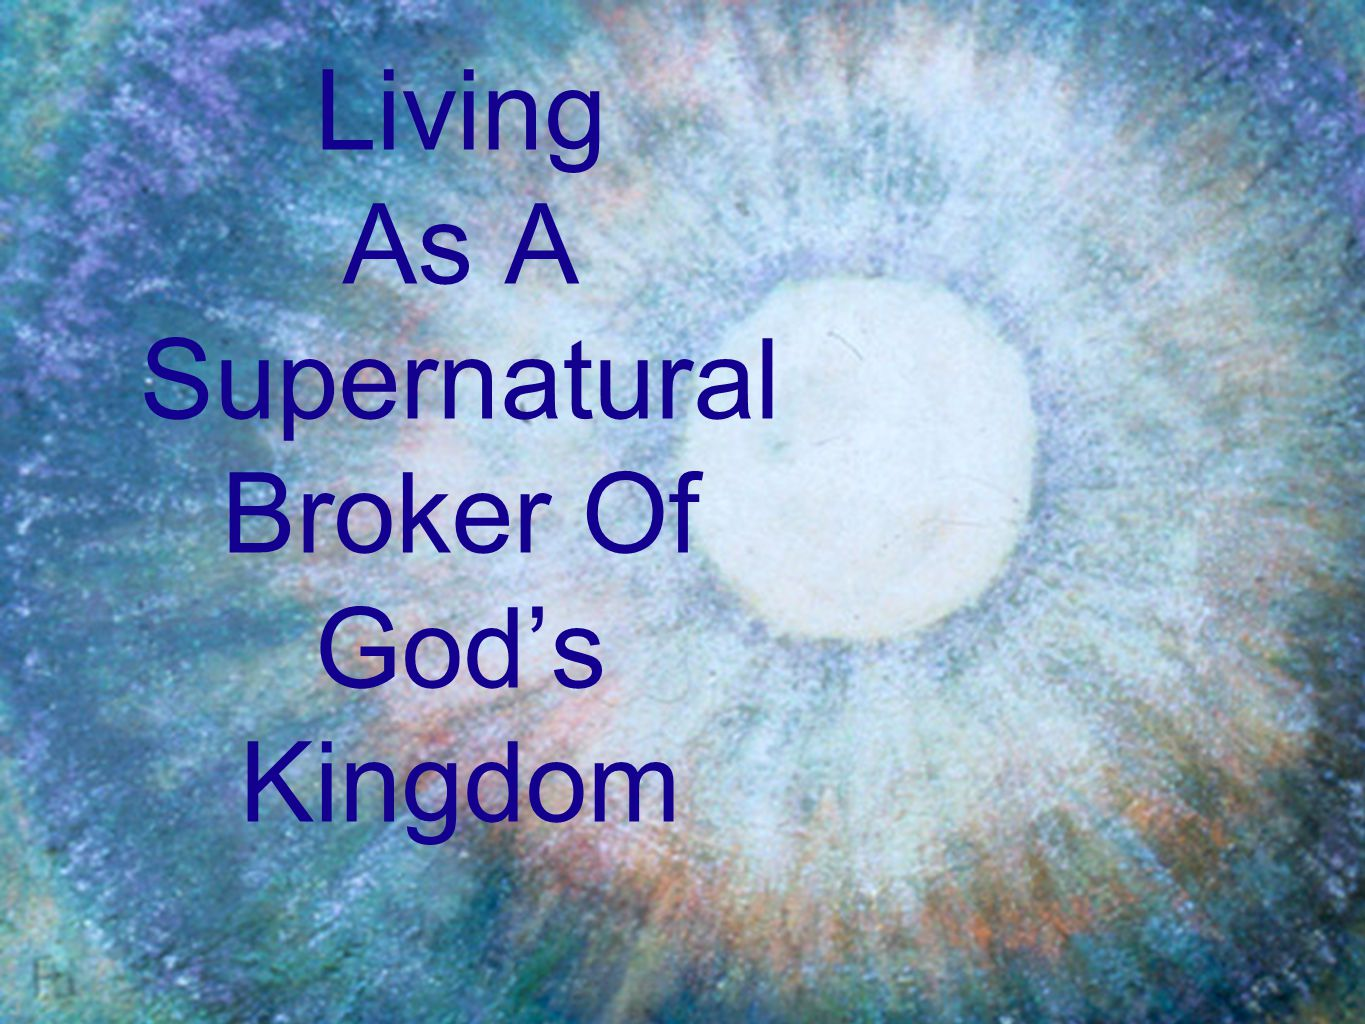 Living As A Supernatural Broker Of God's Kingdom